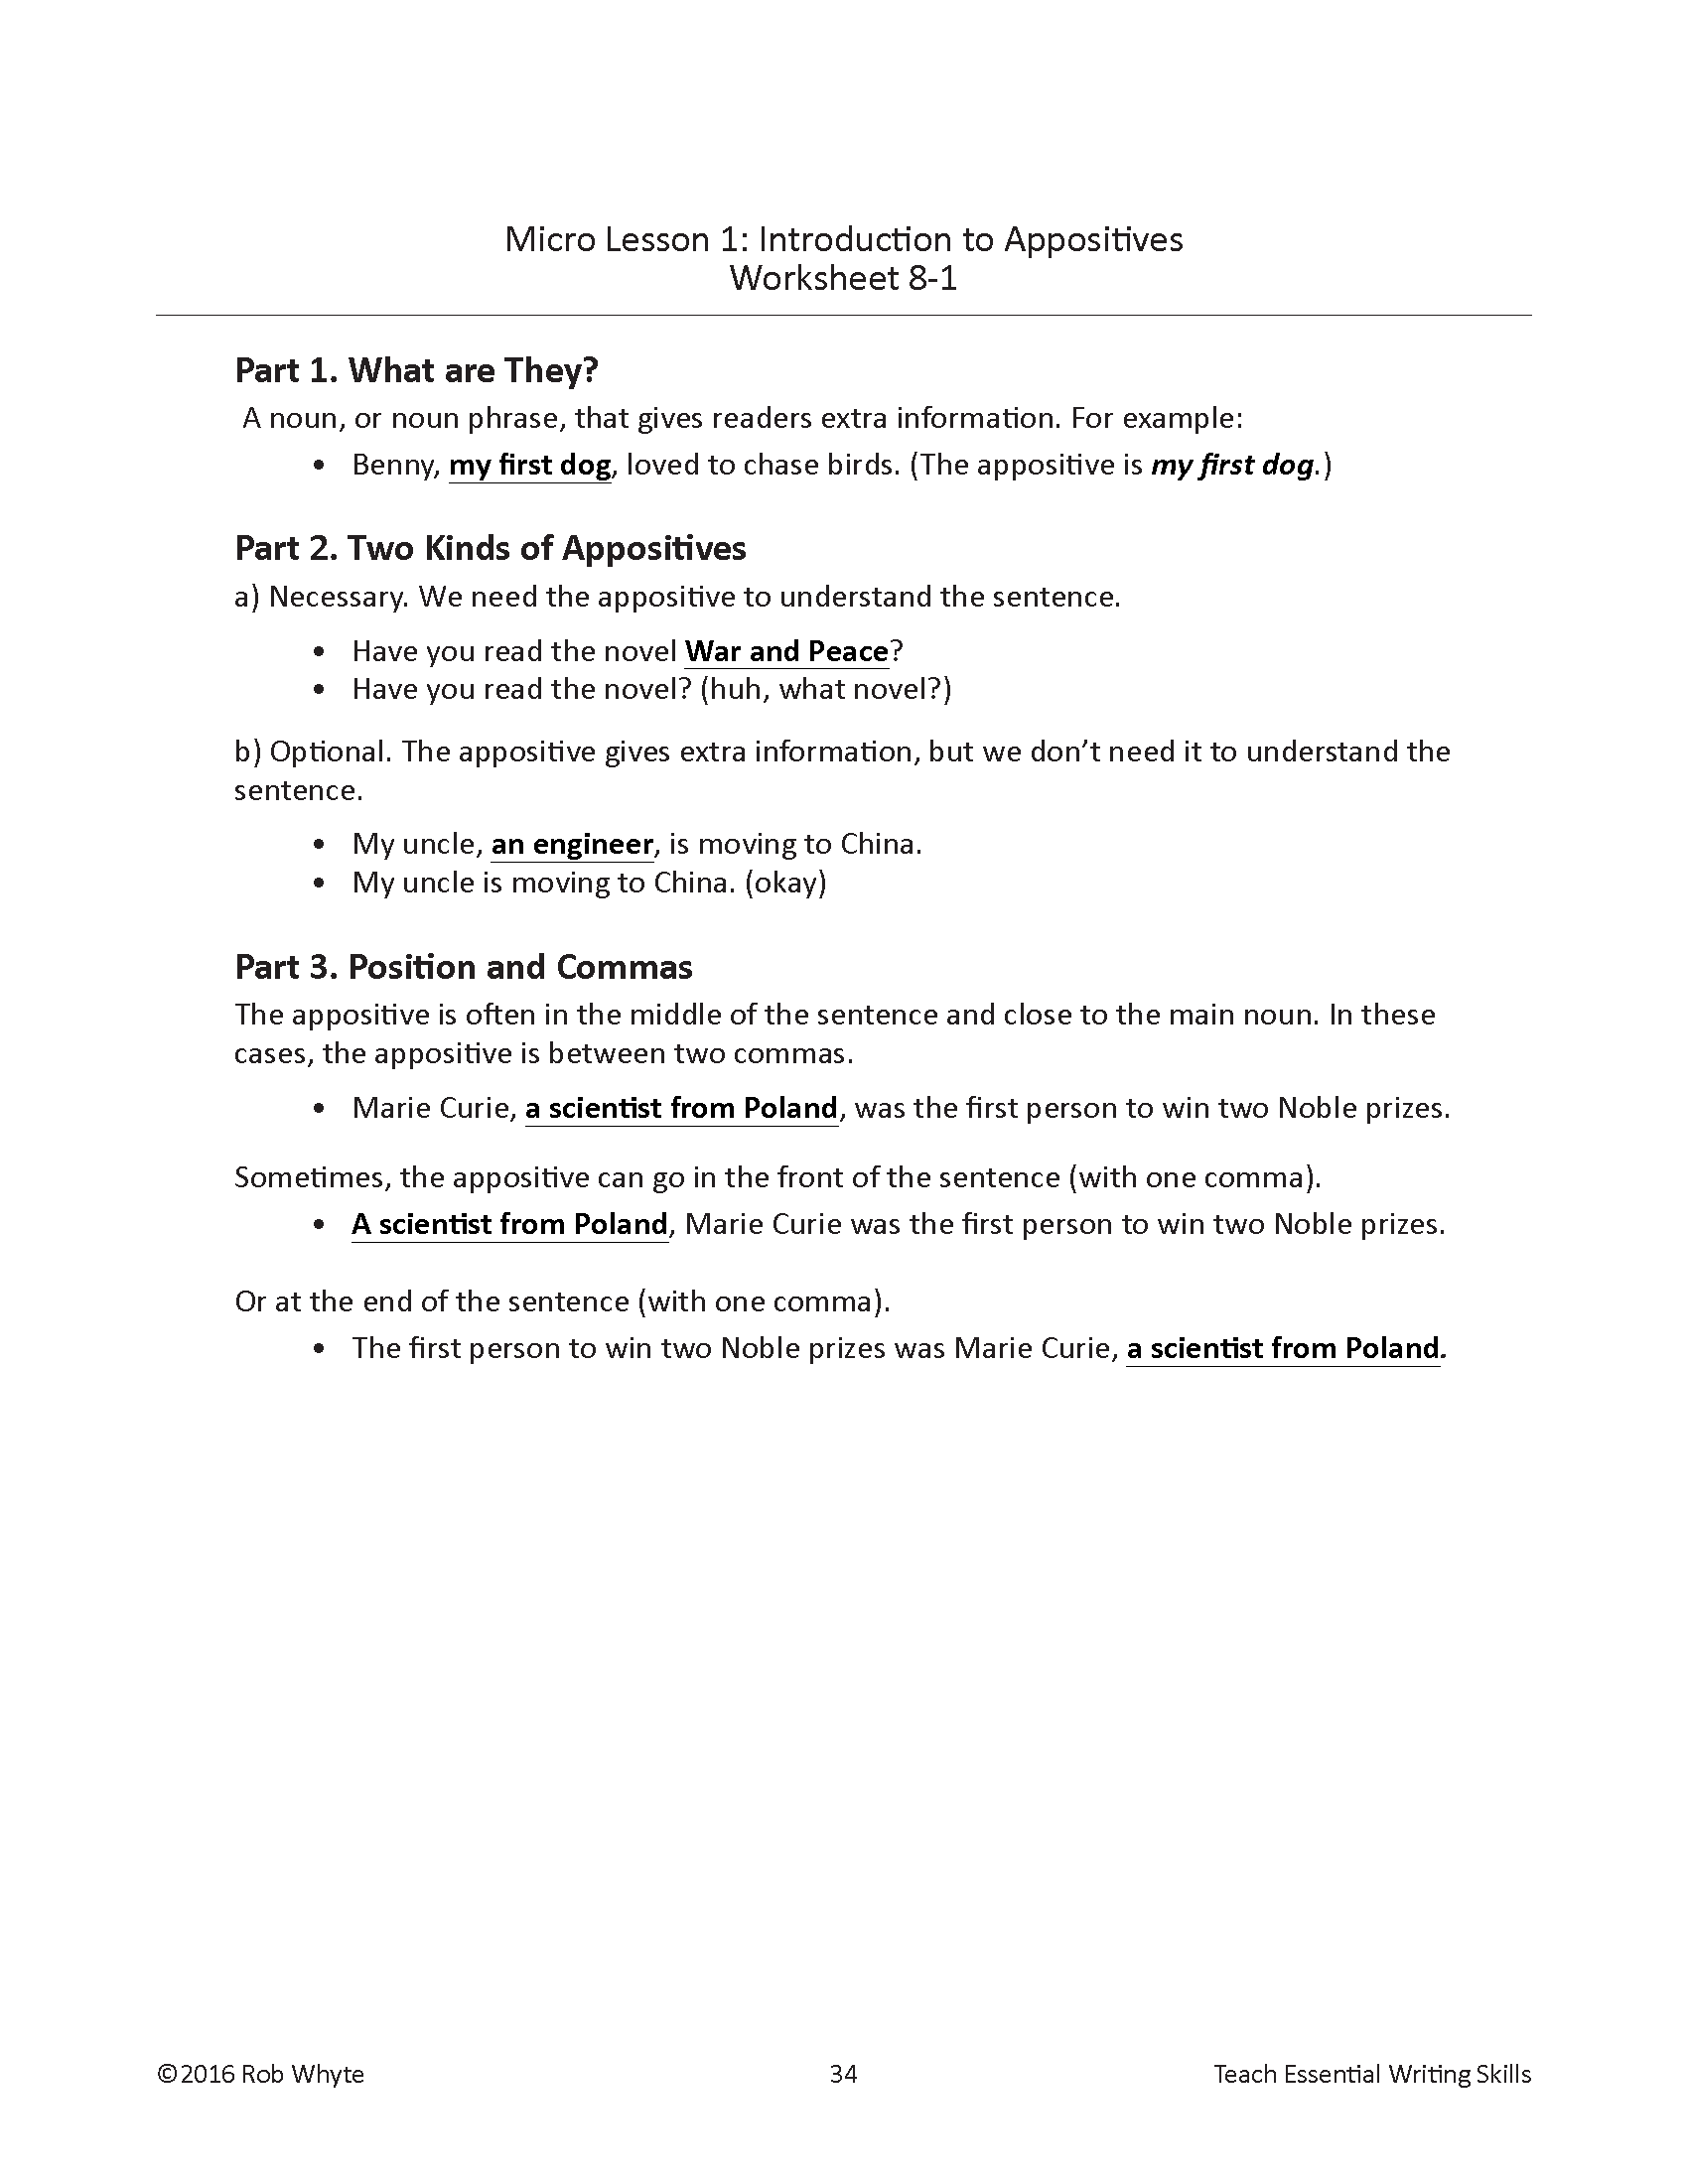 Worksheets Appositives Worksheet improve writing profiiency eslwriting org edit the short passage in part 2 of worksheet 8 3 check answers on appositive 1